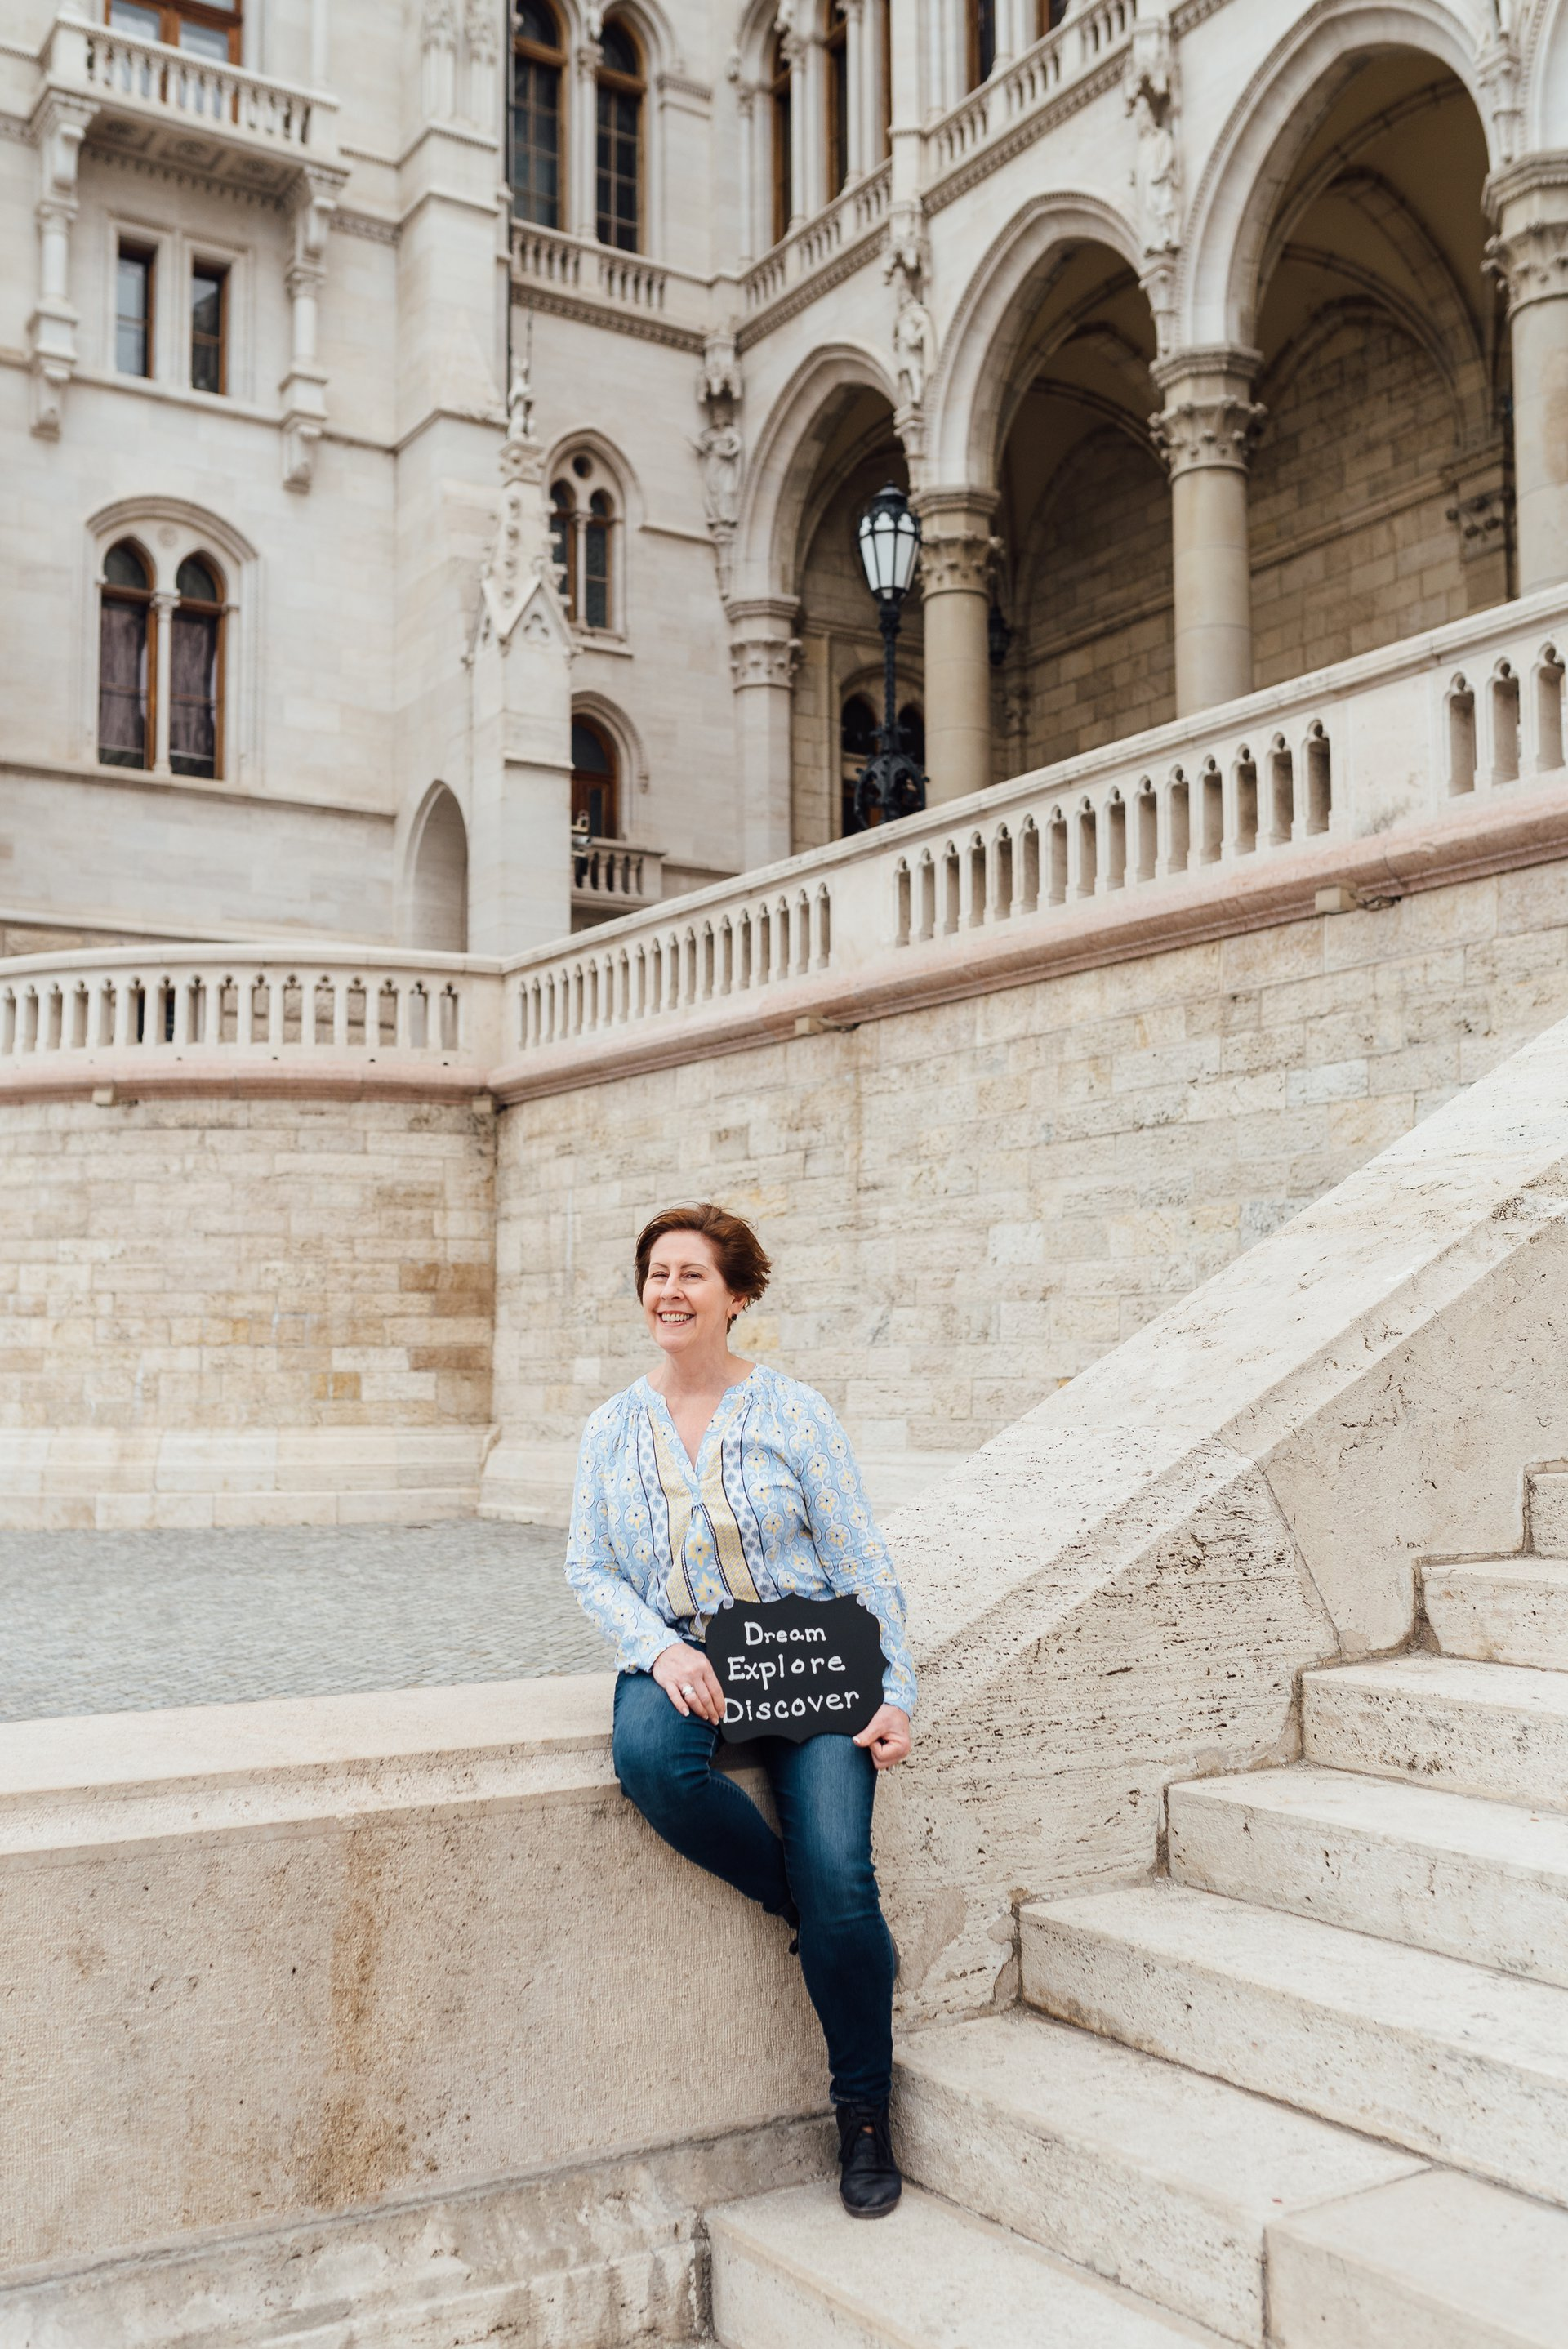 Flytographer Travel Story - A Day in Budapest